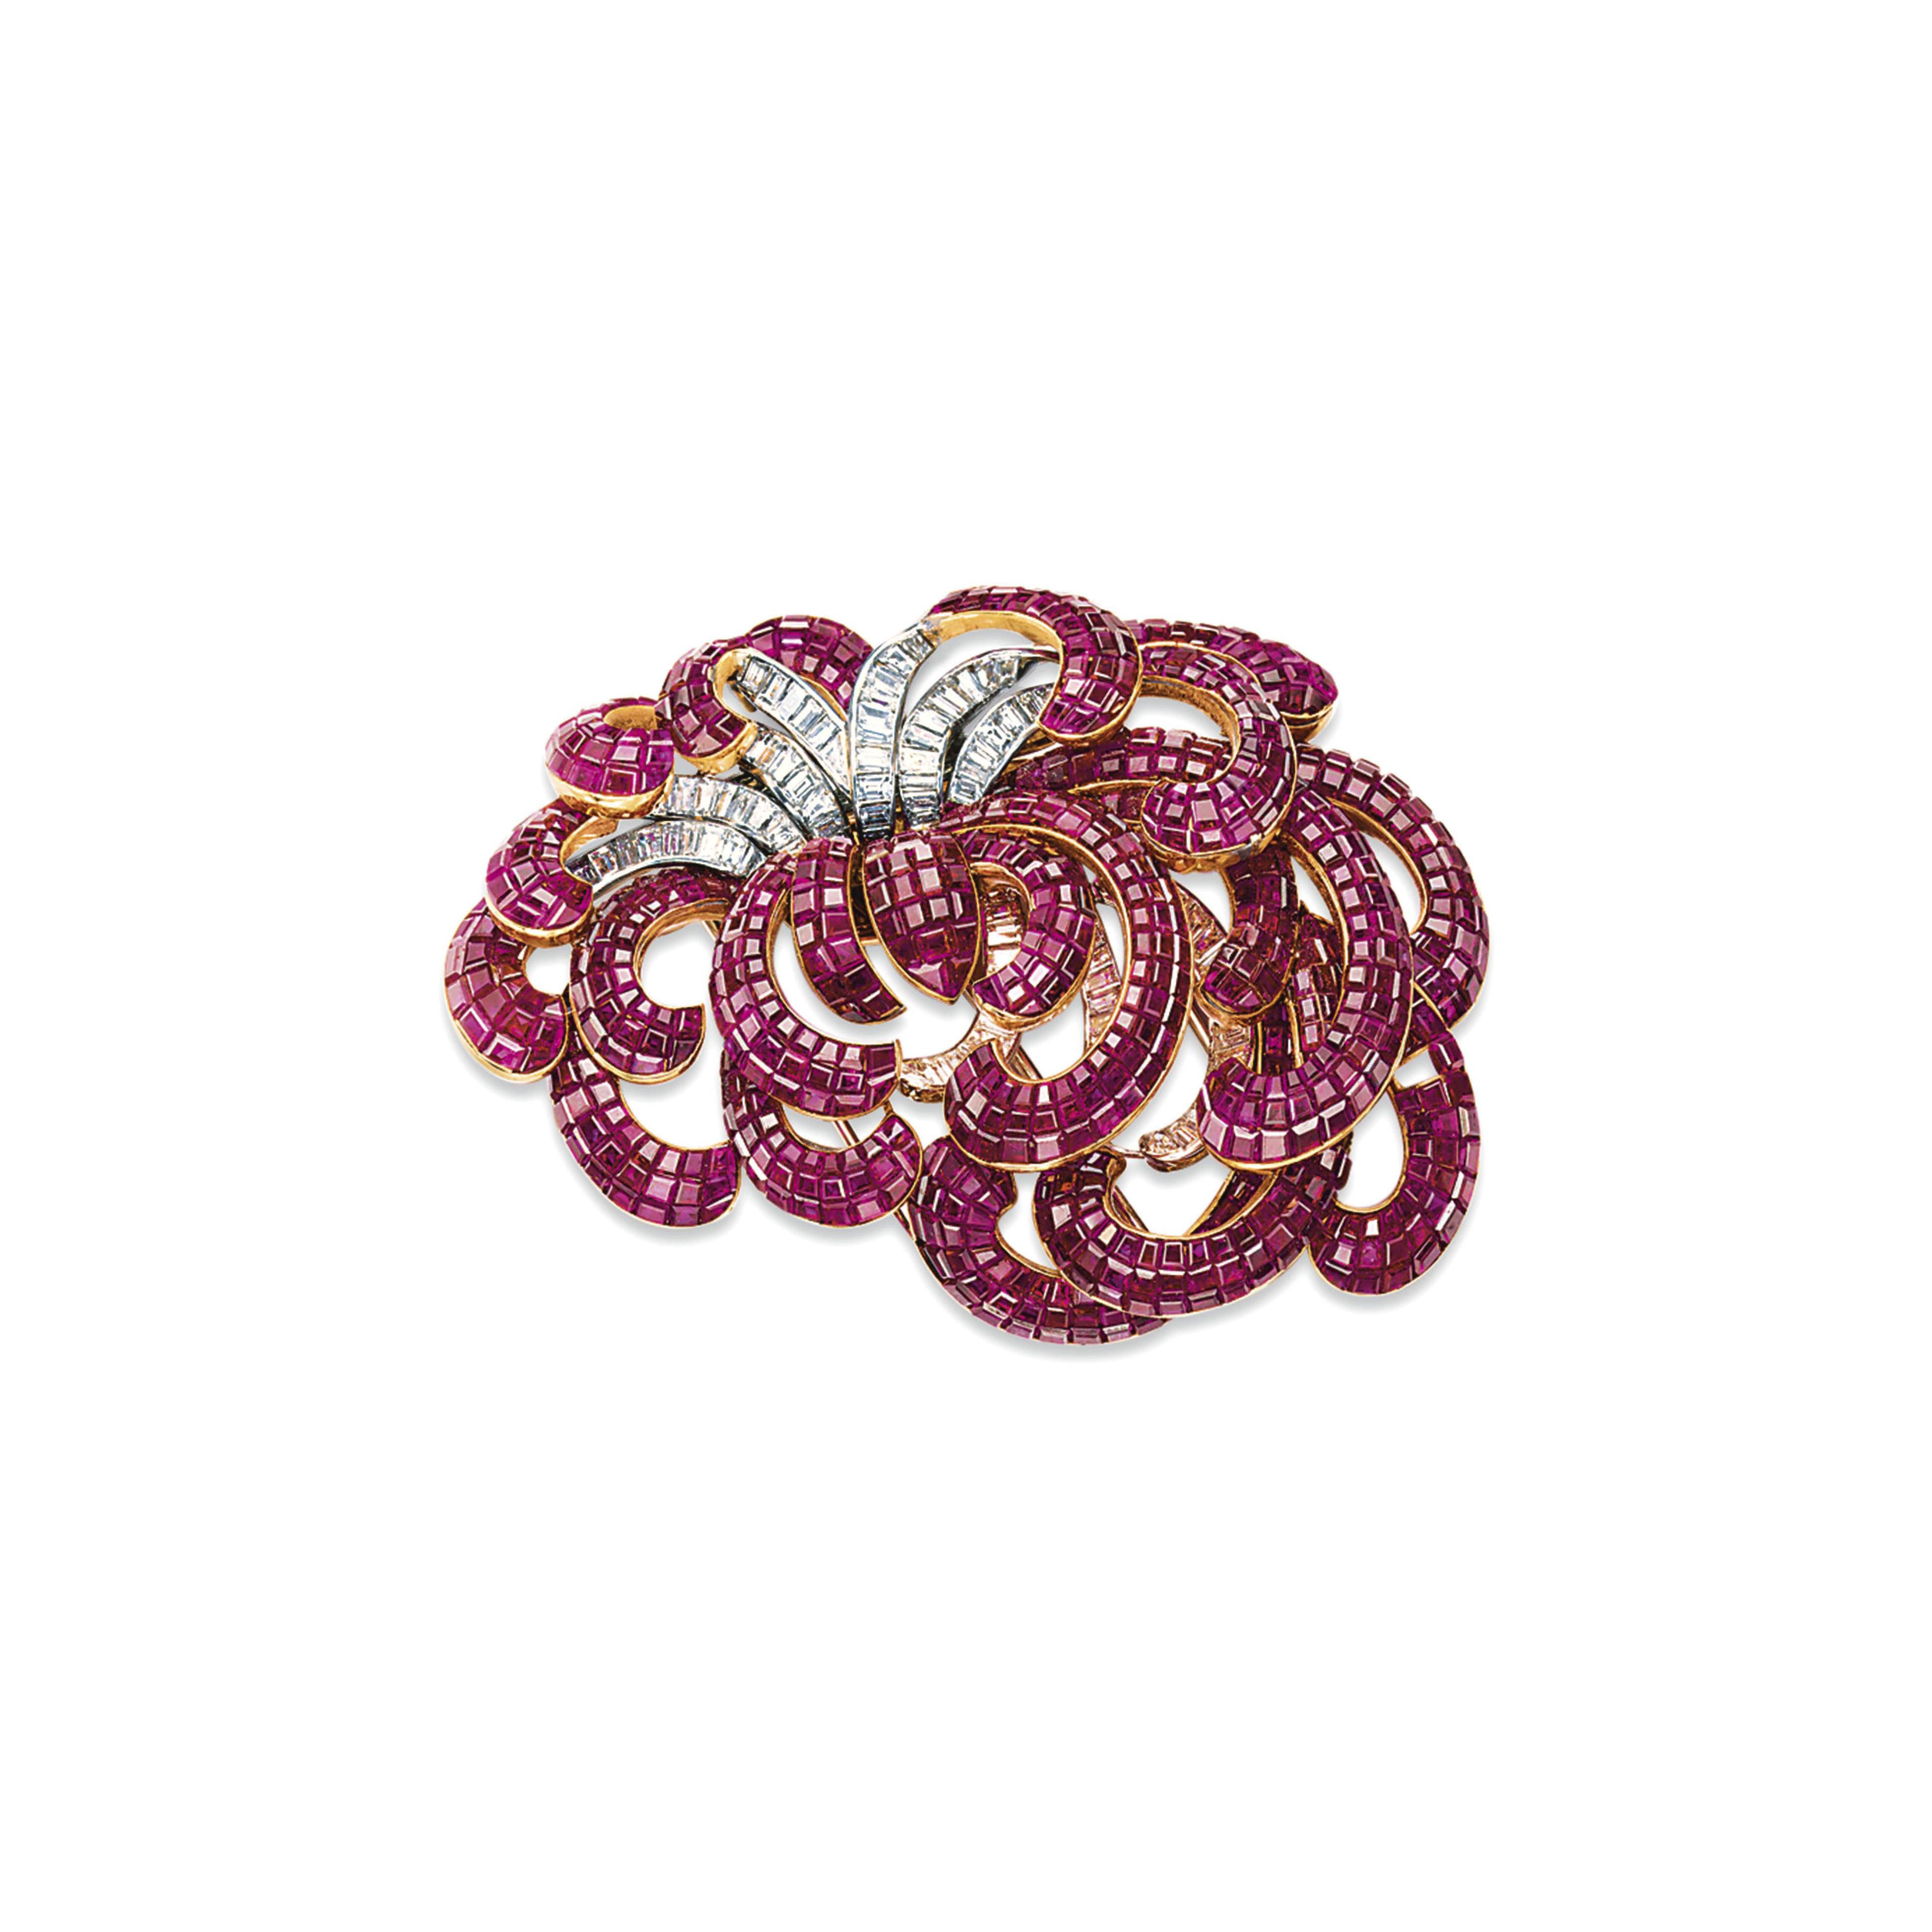 A SPLENDID 'MYSTERY-SET' RUBY AND DIAMOND BROOCH, BY VAN CLEEF & ARPELS